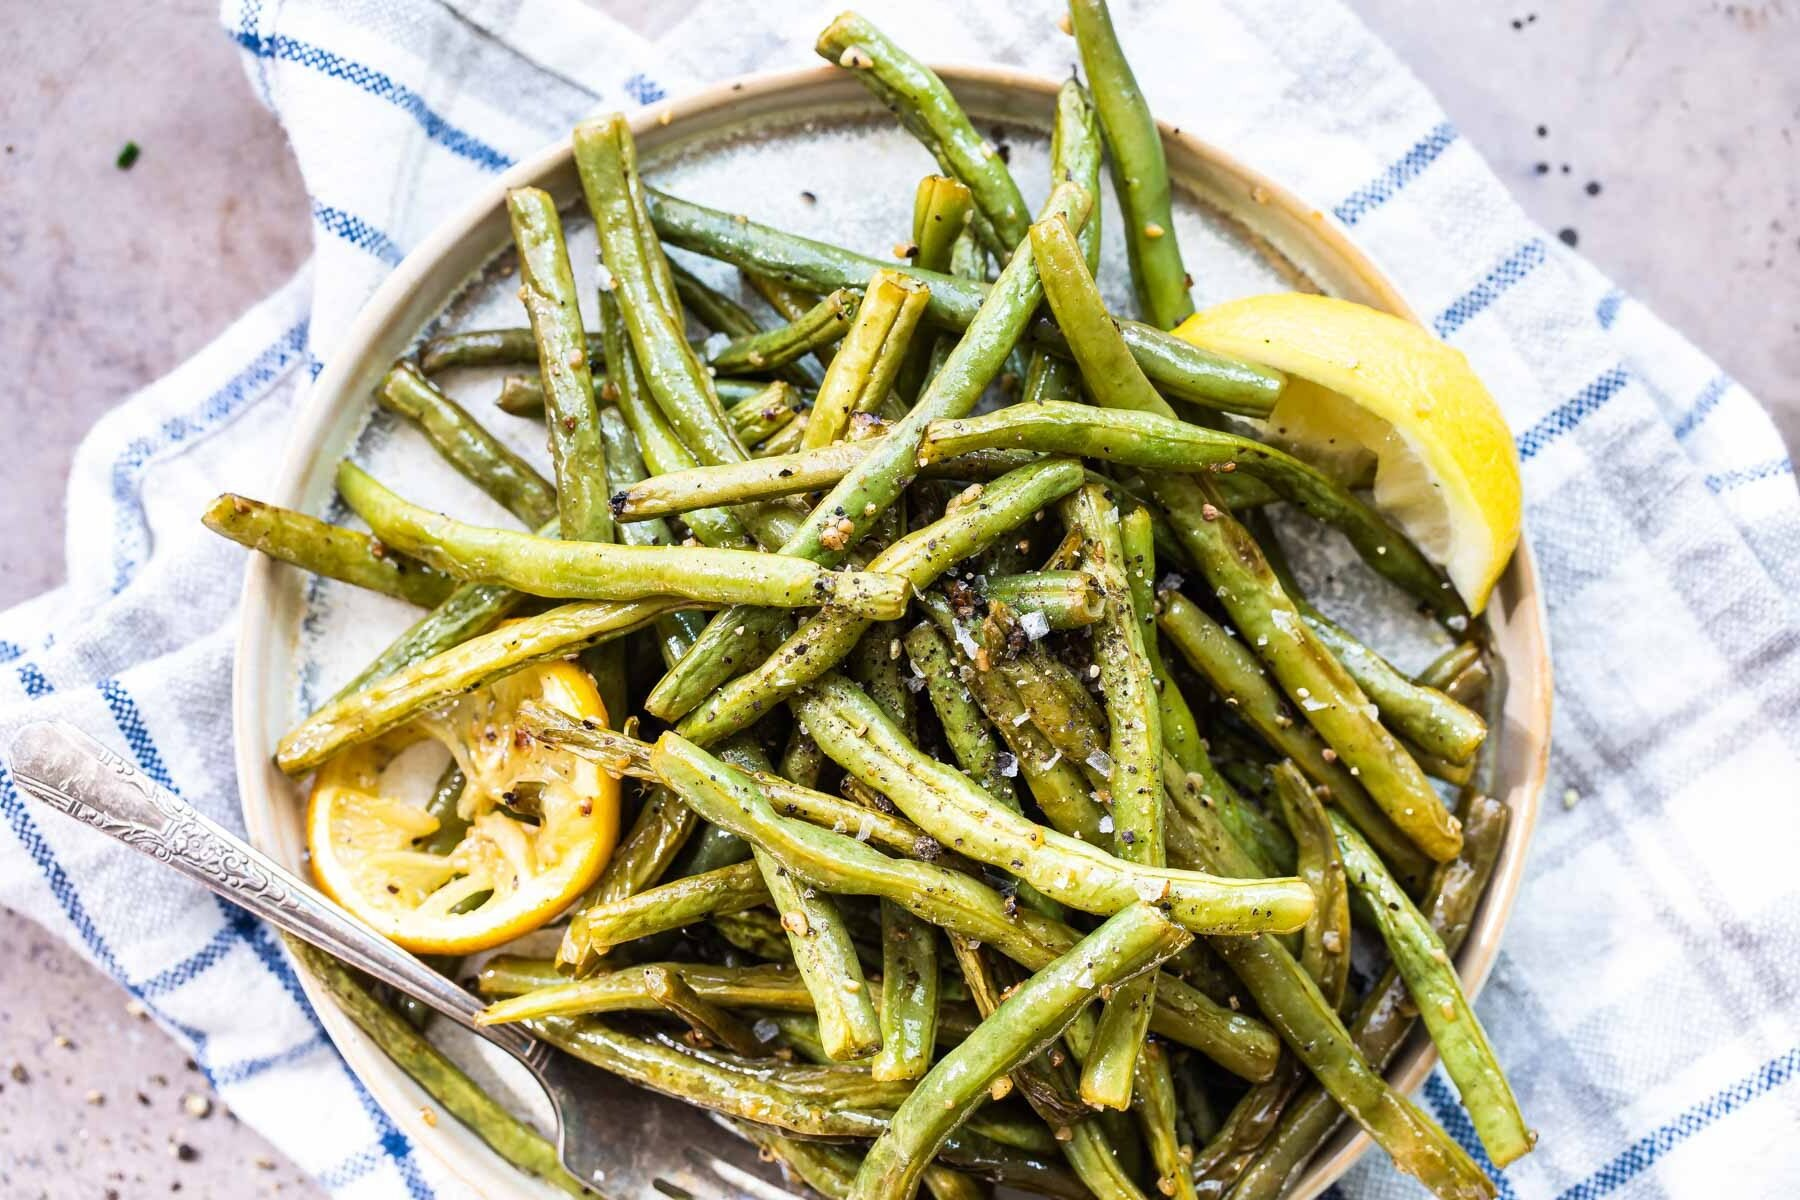 Roasted green beans on a round platter with lemon garnish.